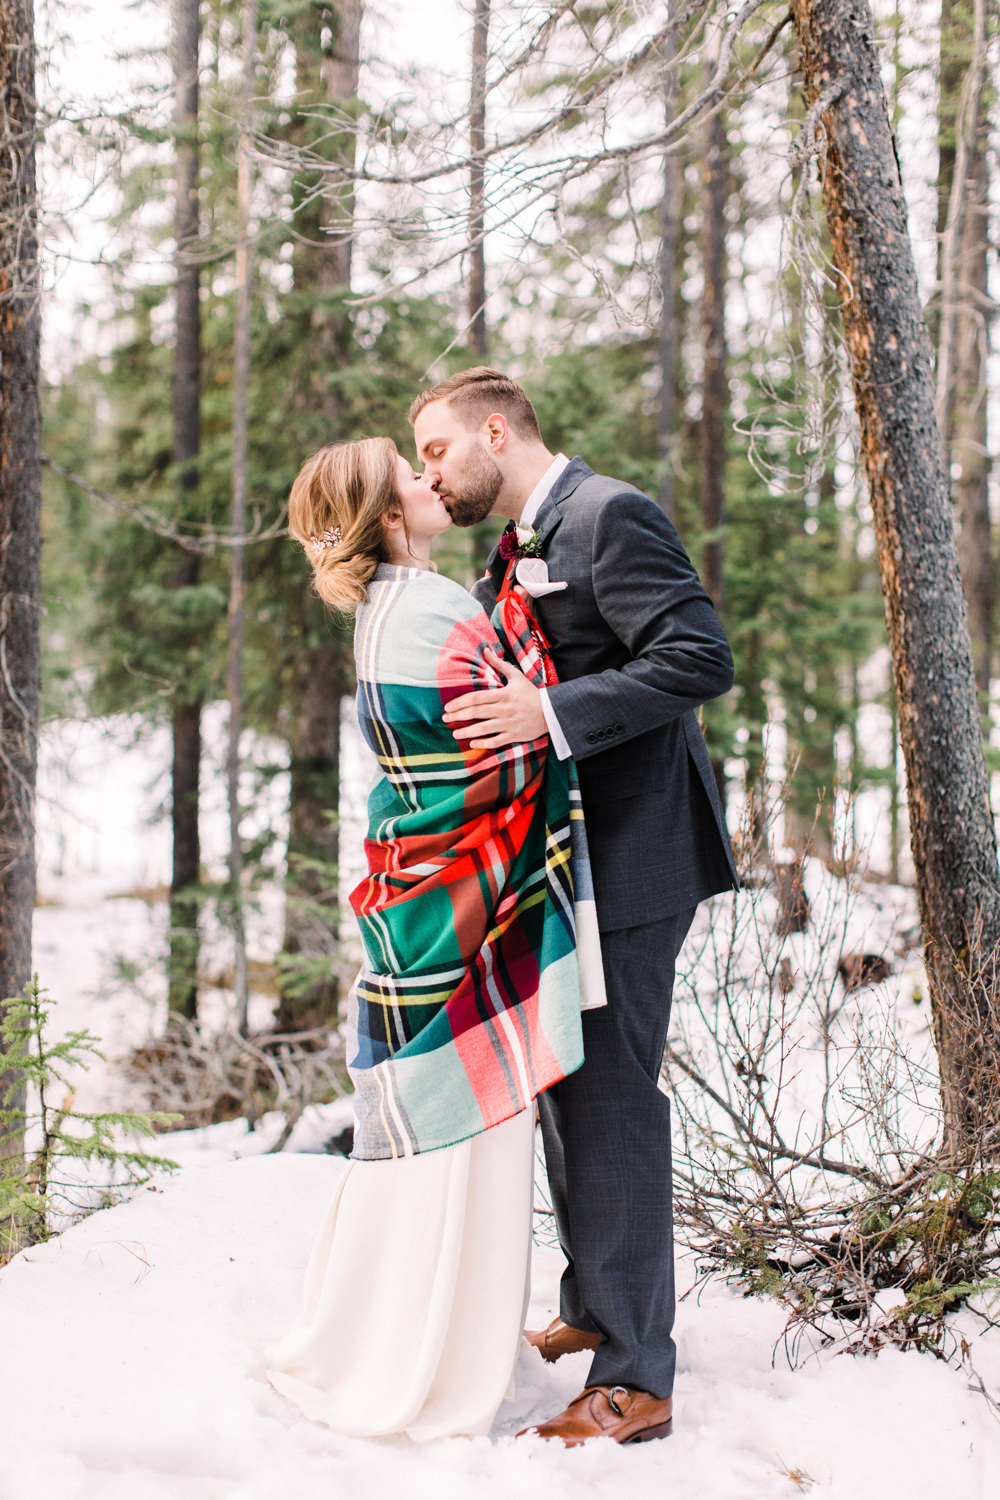 Matt-and-Jennas-Emerald-Lake-winter-wedding-37.jpg